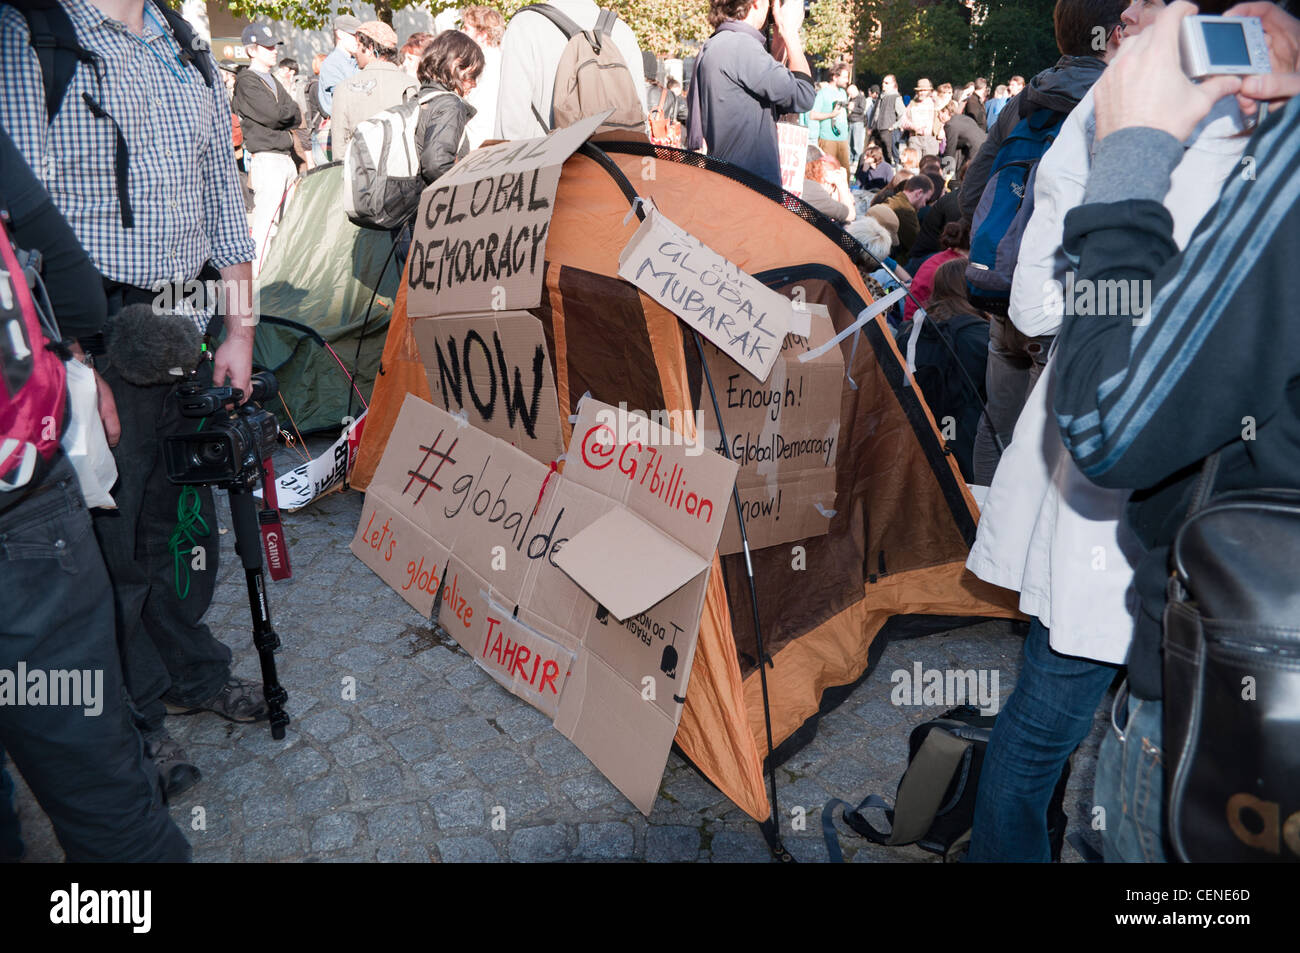 A tent covered in slogans on the first day of the Occupy LSX protest camp outside St Paul's Cathedral, London - Stock Image